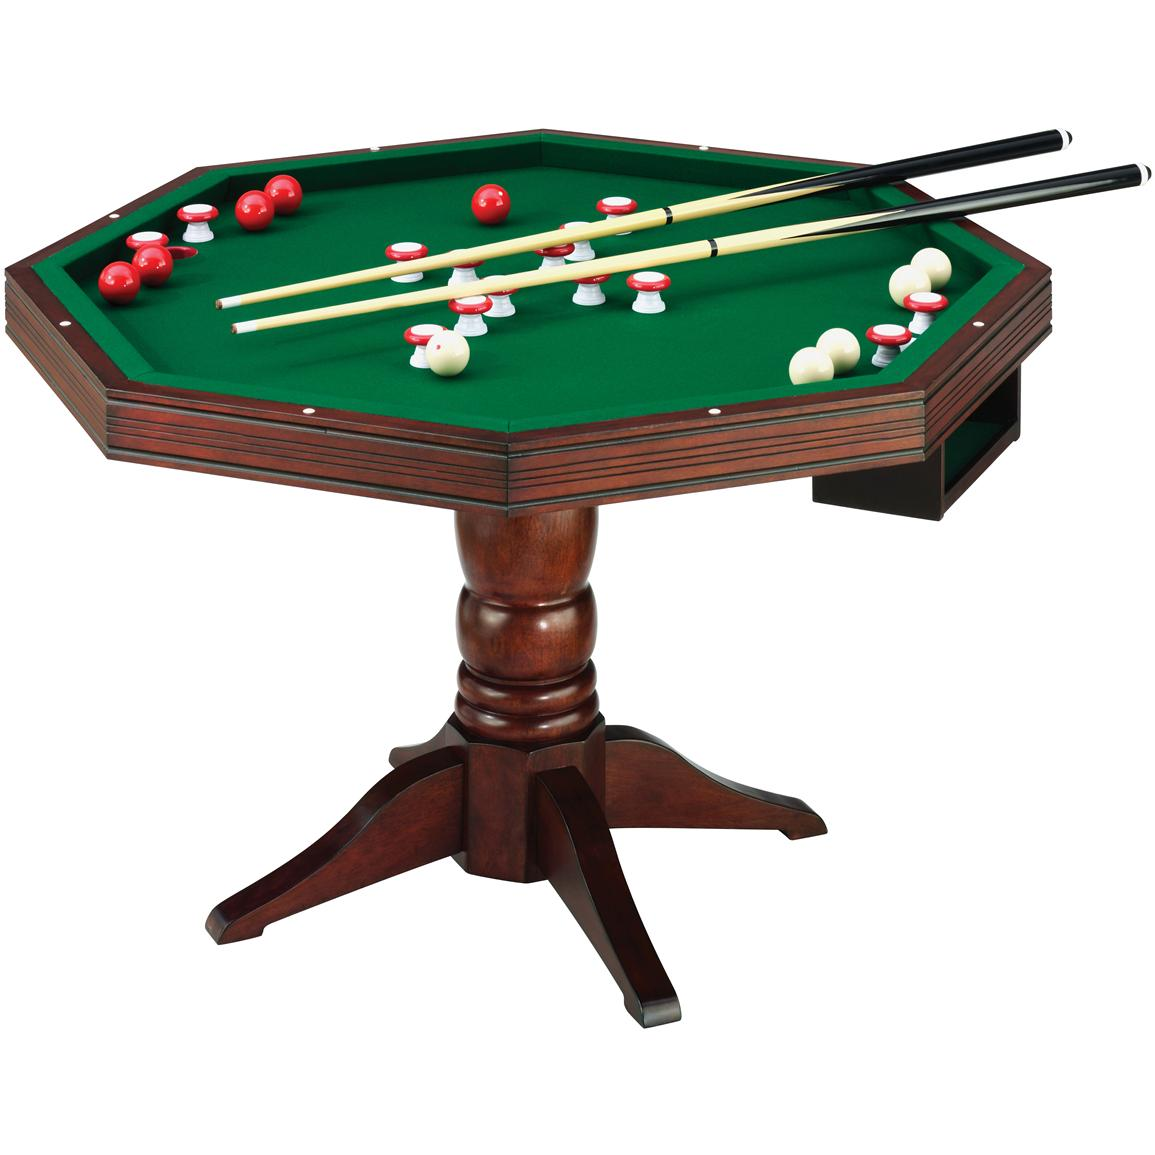 Harvard bumper maxx 3 in 1 game table 171598 at for How to play fish table game